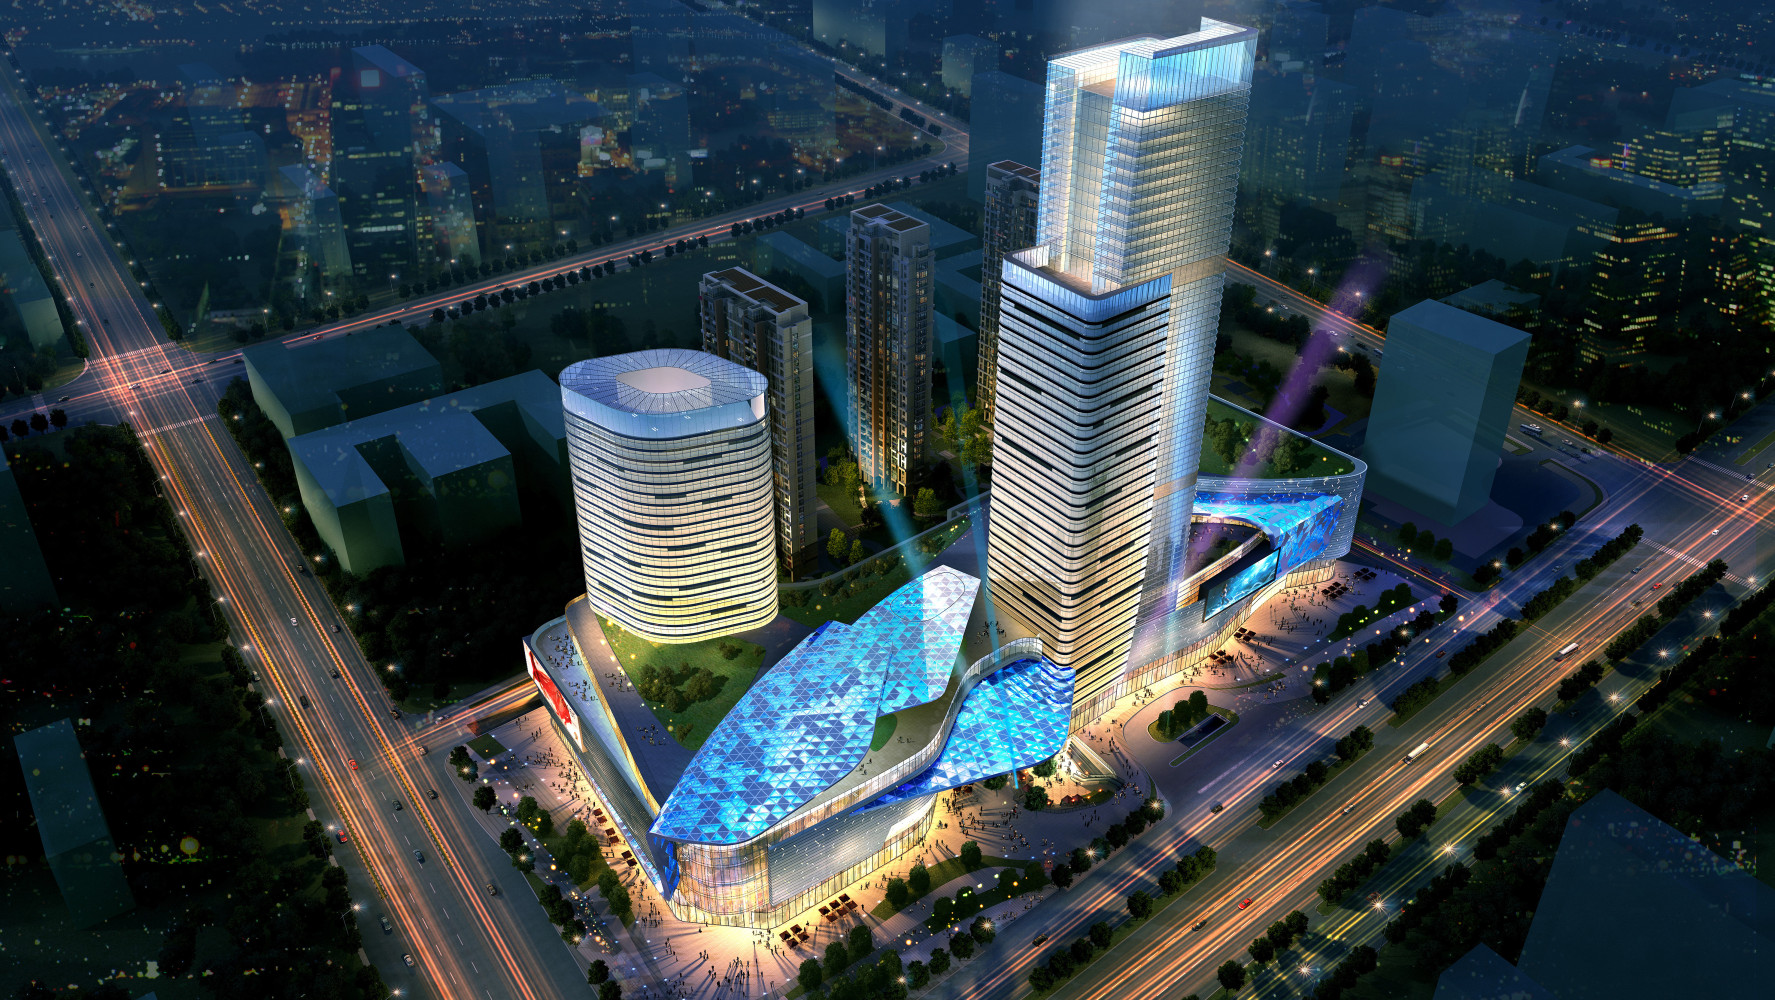 Nangtong Yuanrong Mixed-Use Complex, by Archilier Architecture